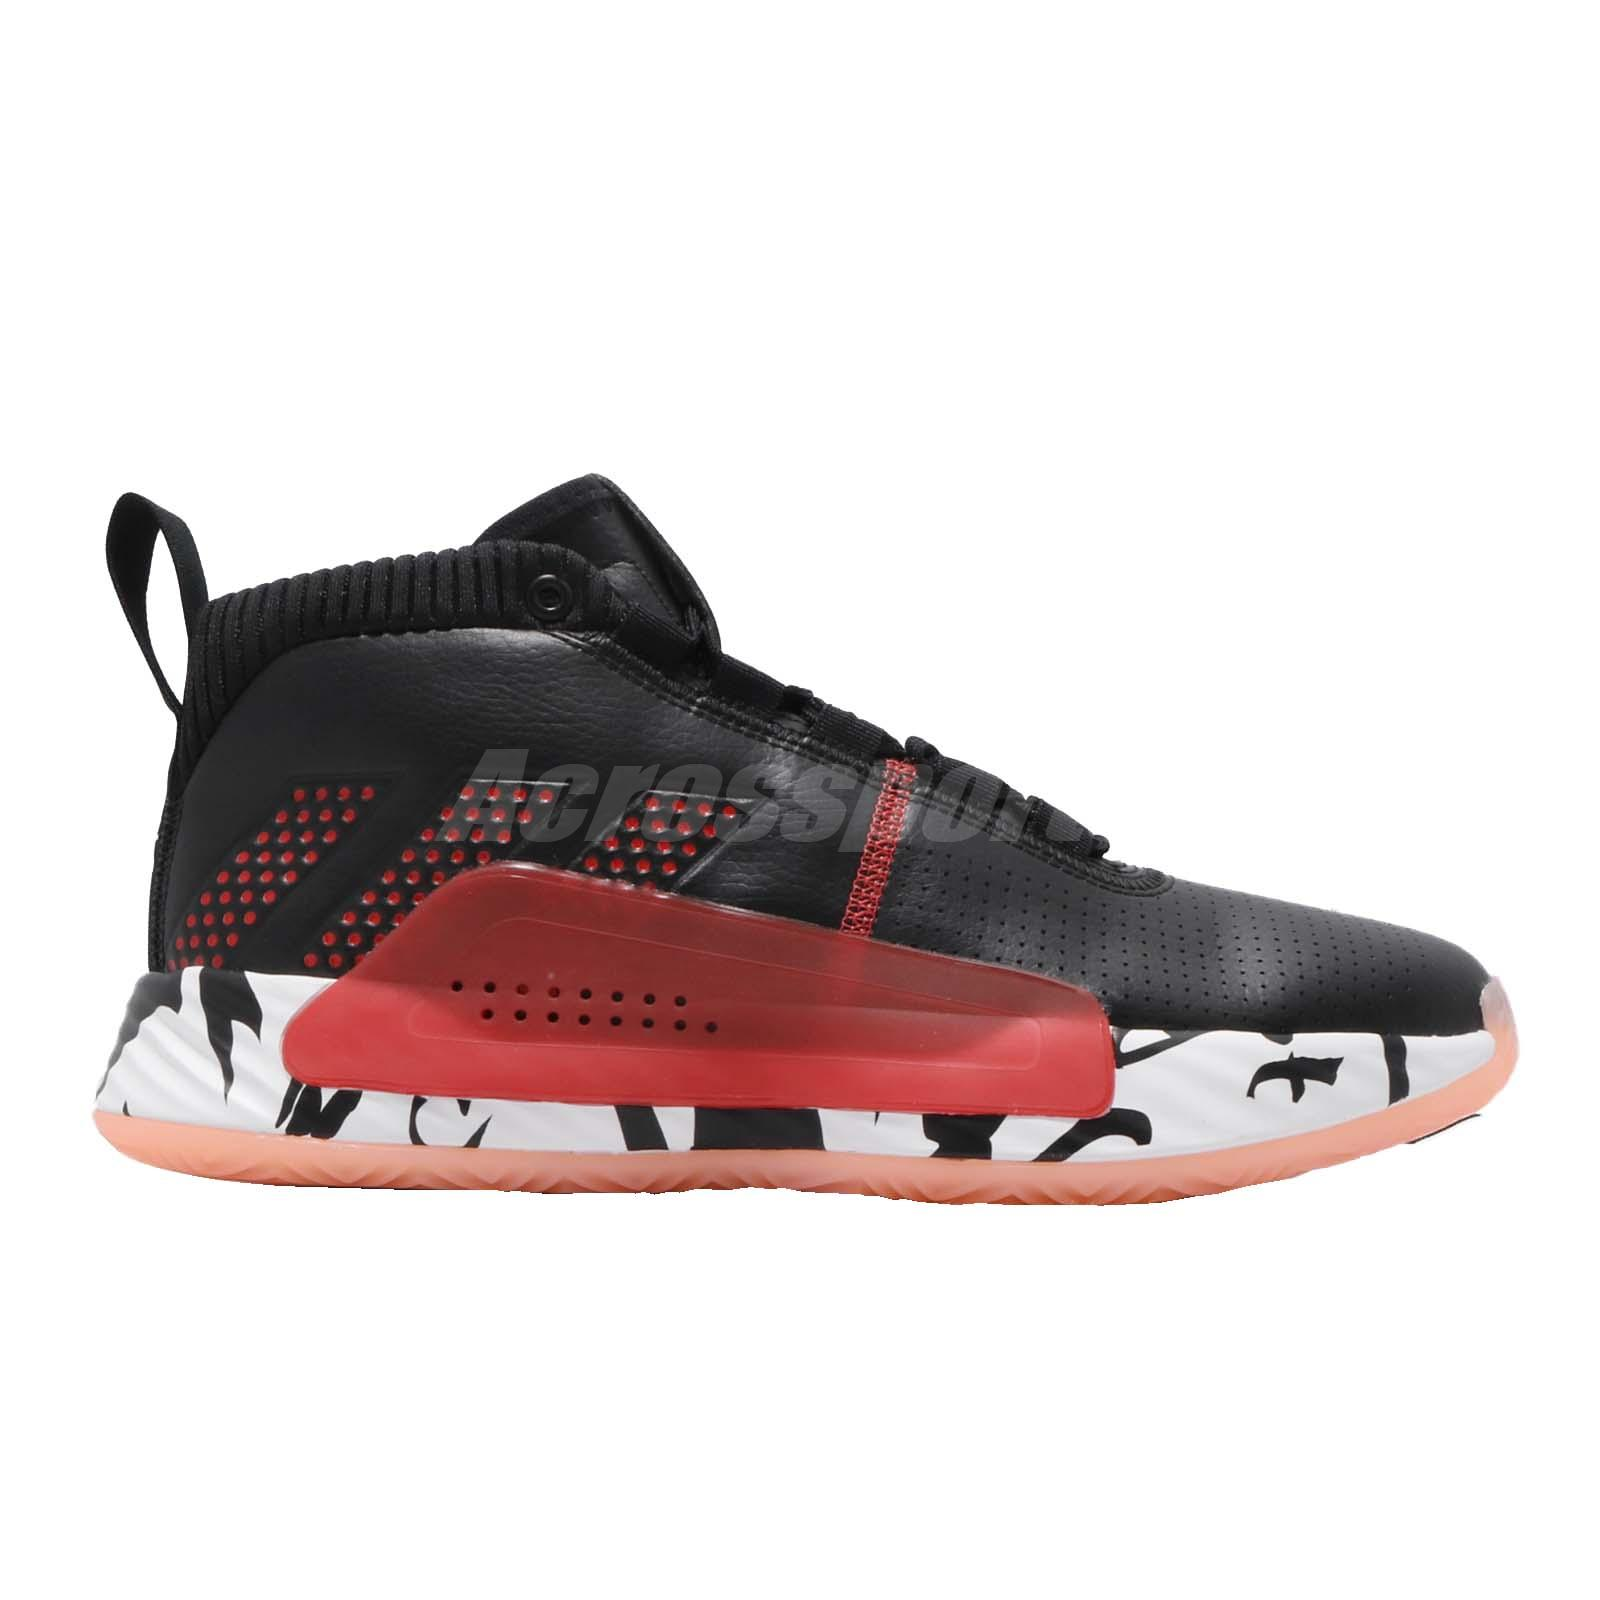 5ee5256512bf adidas DAME 5 Damian Lillard V CNY Chinese New Year Men Shoes ...